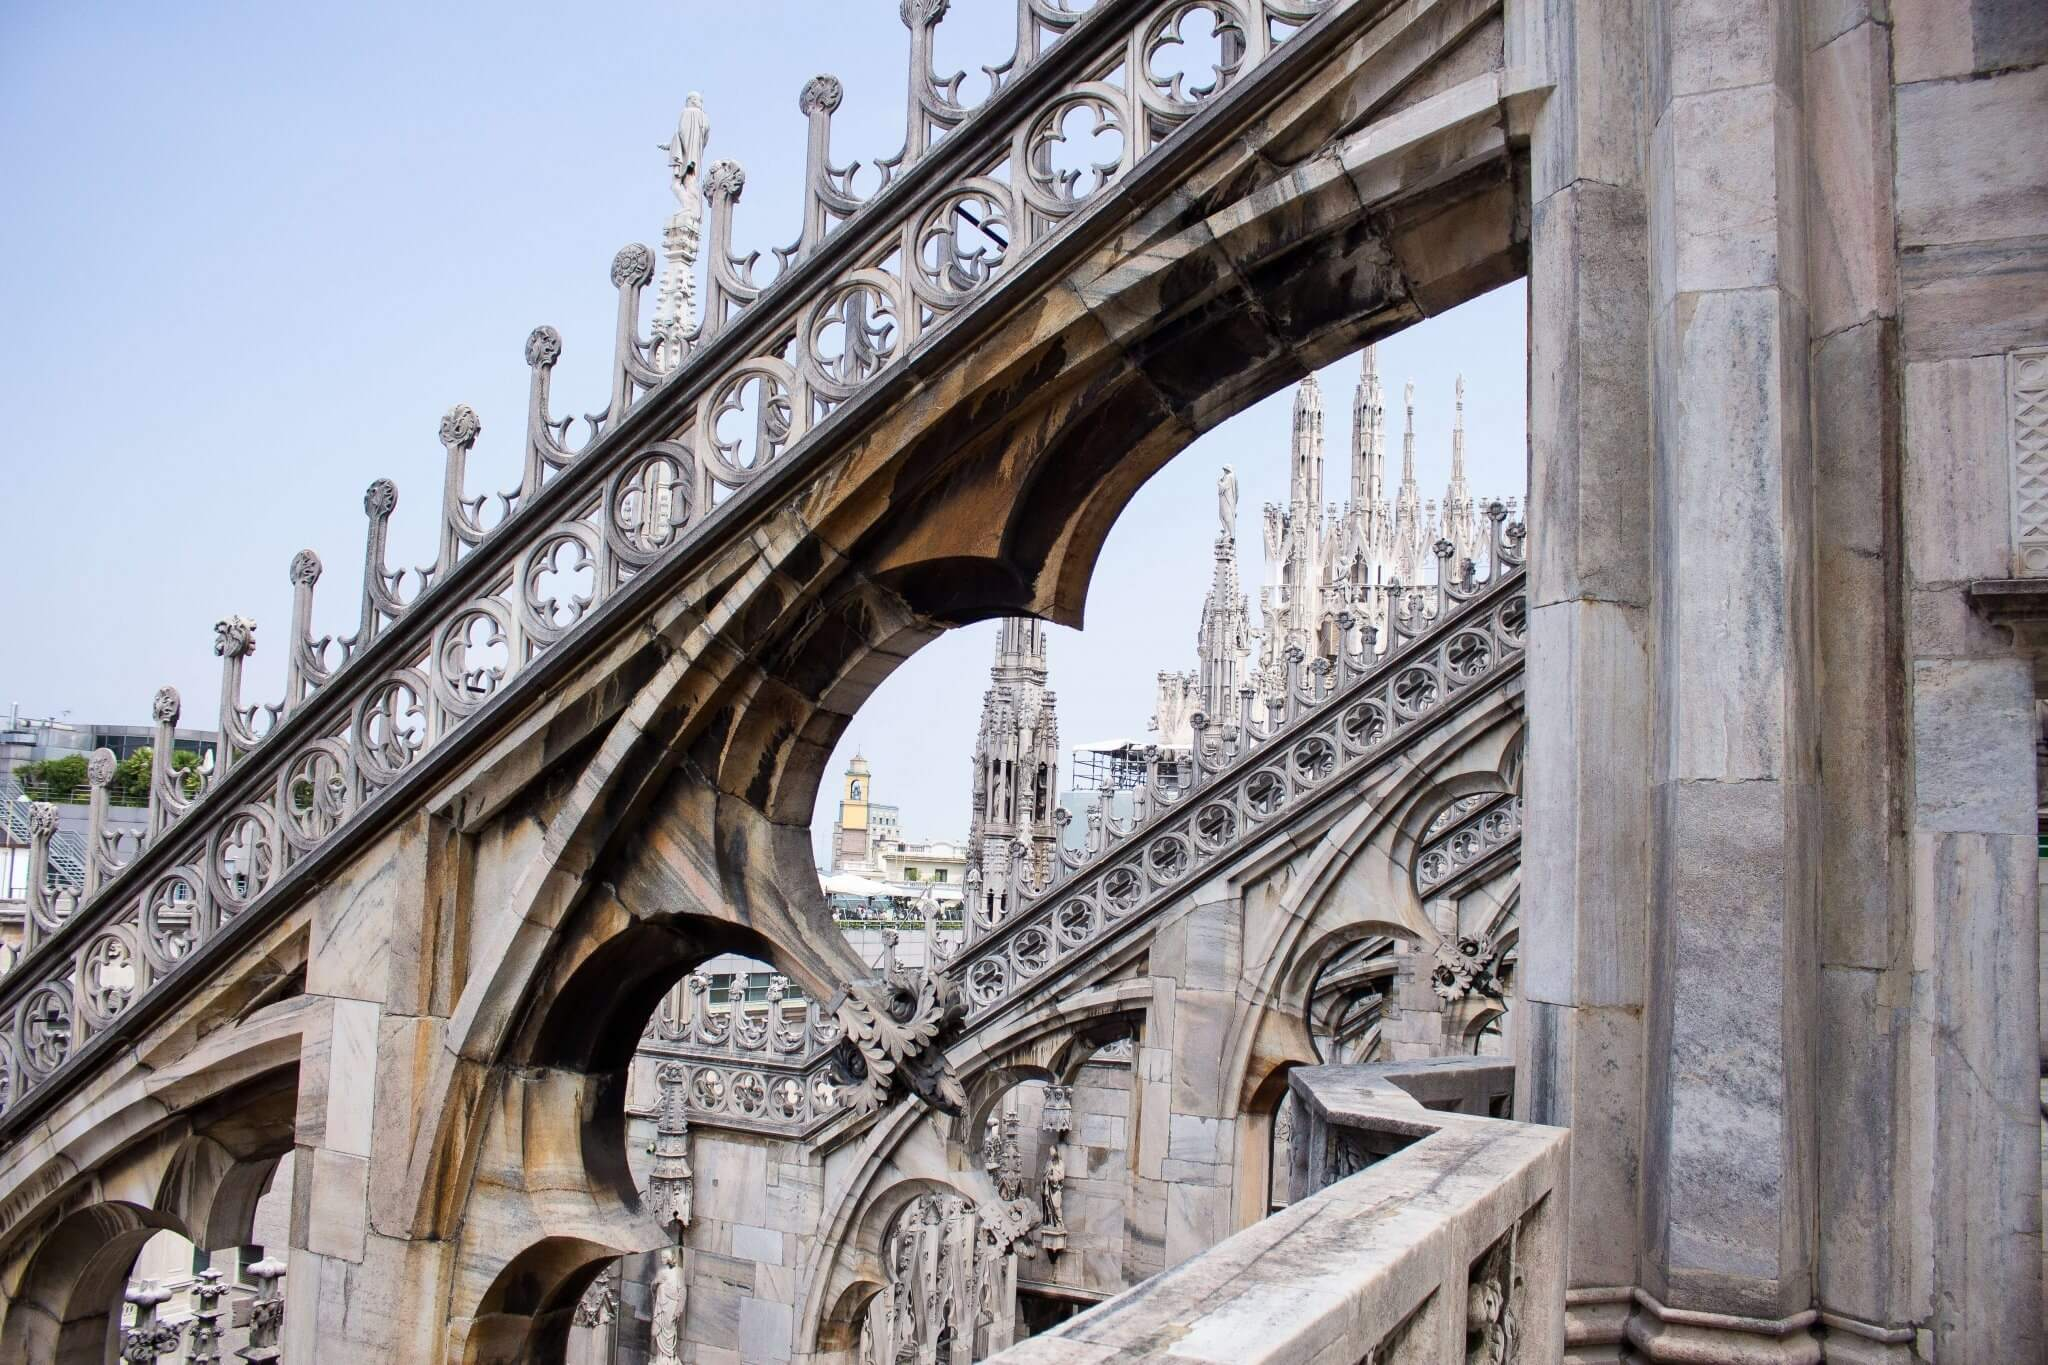 Milano; Travel Guide; architecture; food; pizza; drinks; la rinascente; duomo di milano